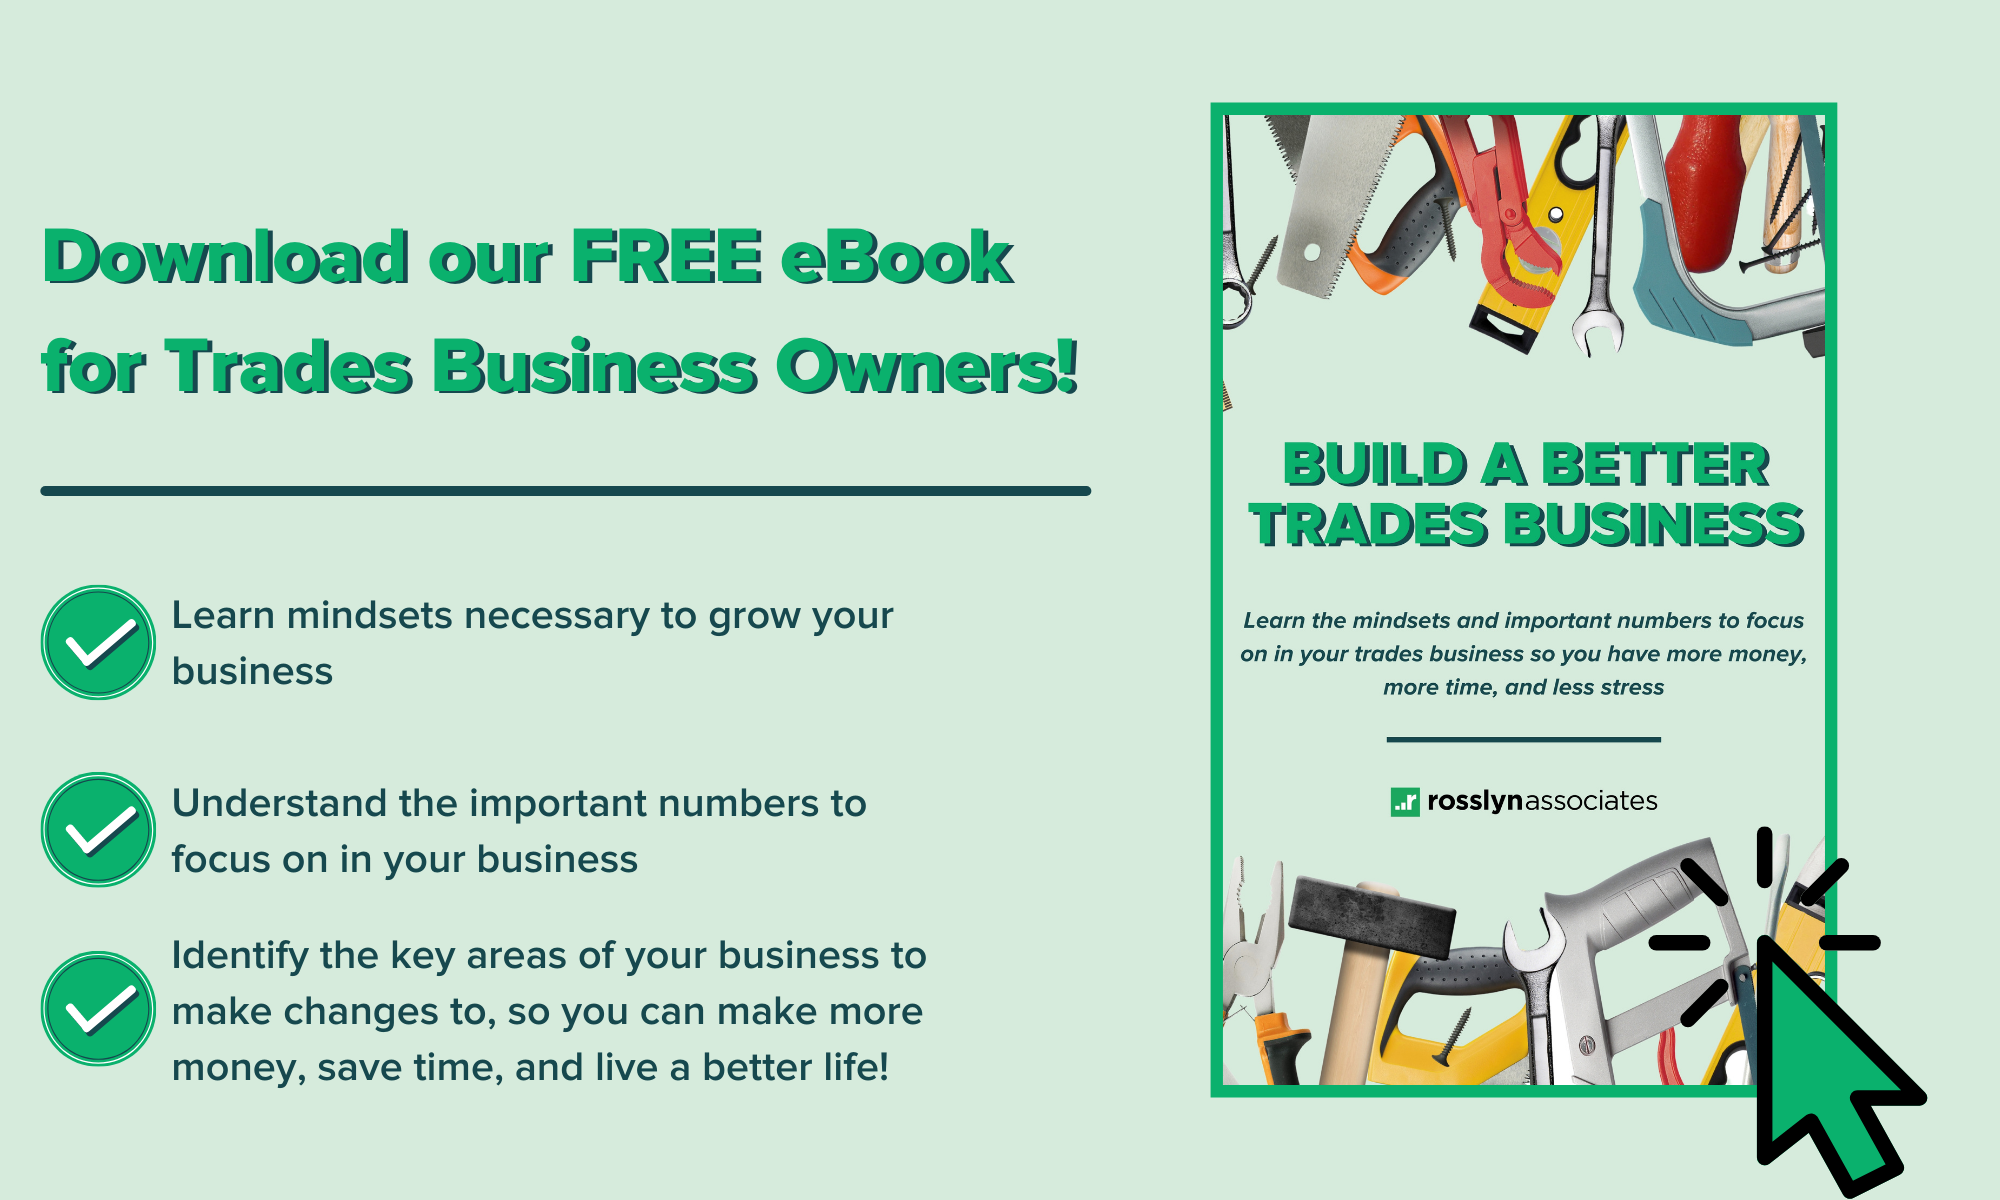 click here to download our free ebook for trades business owners